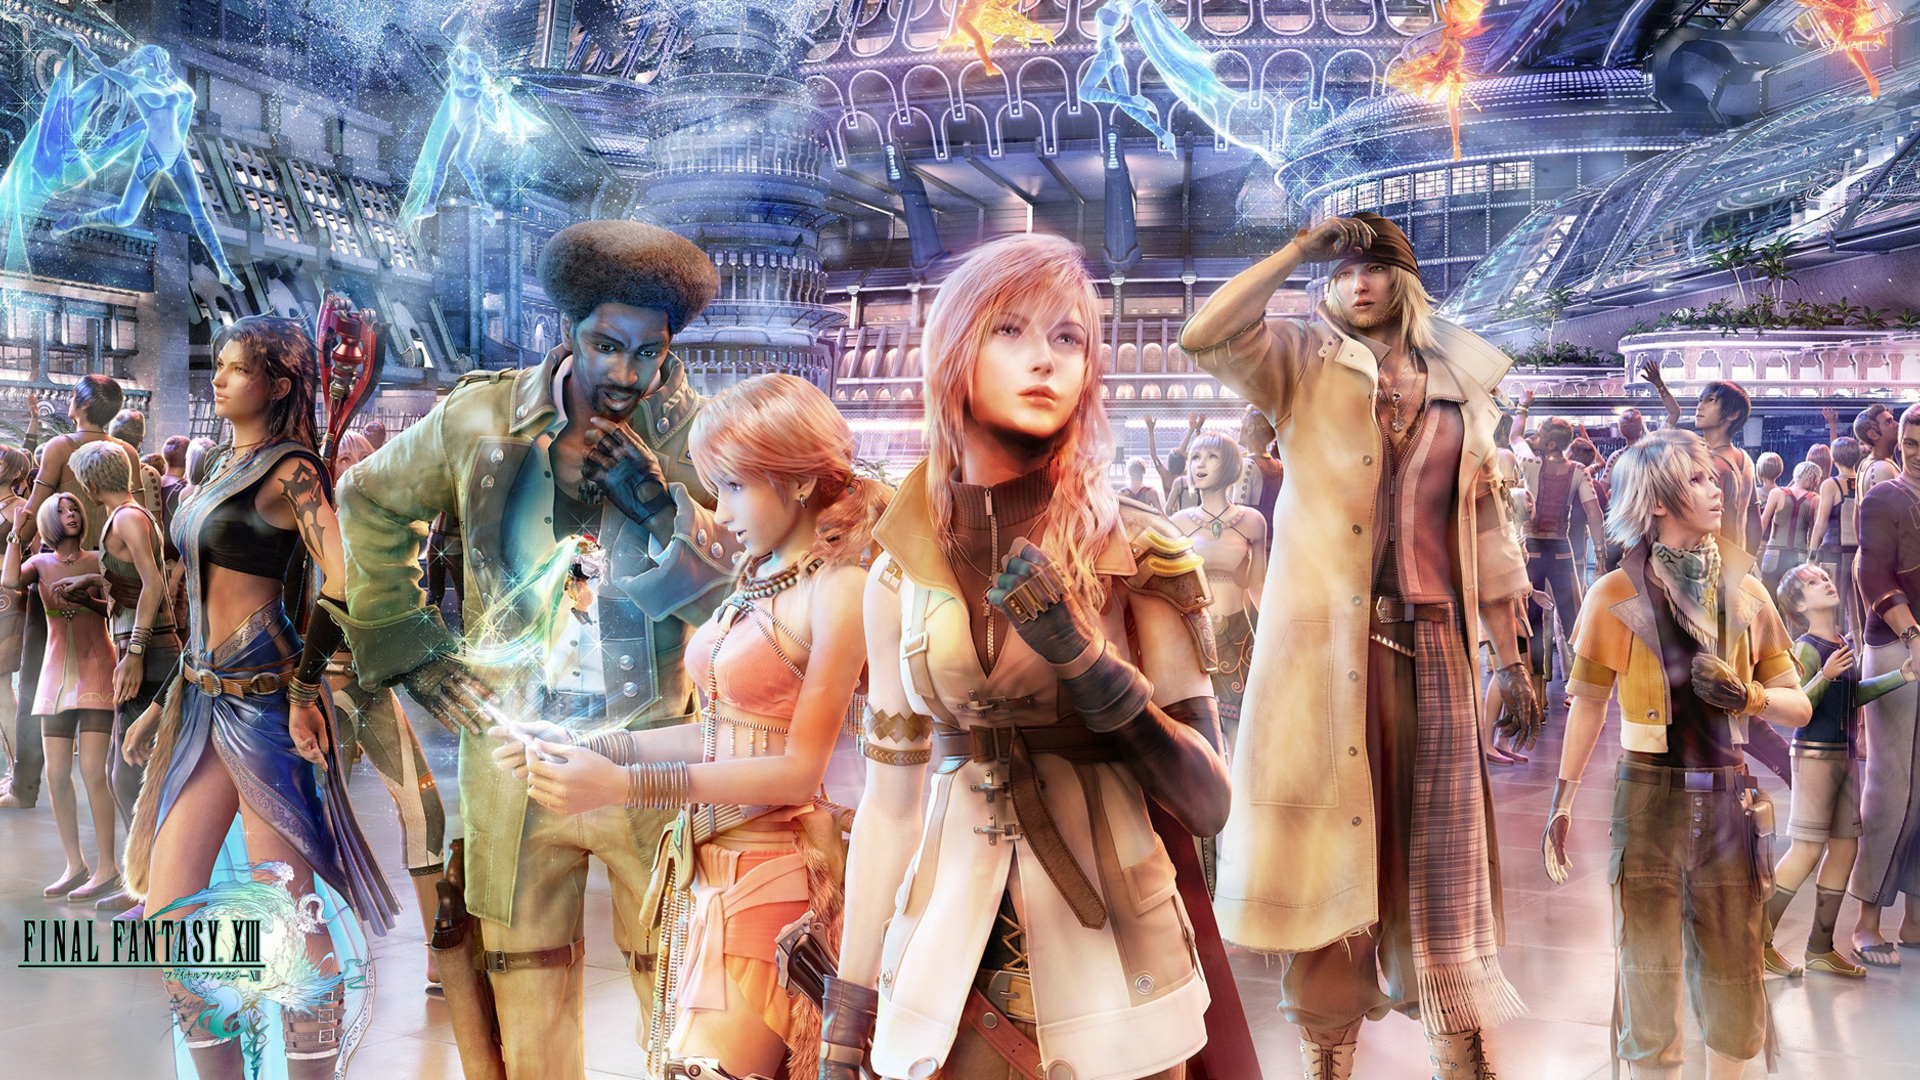 final fantasy 13 pc download full version